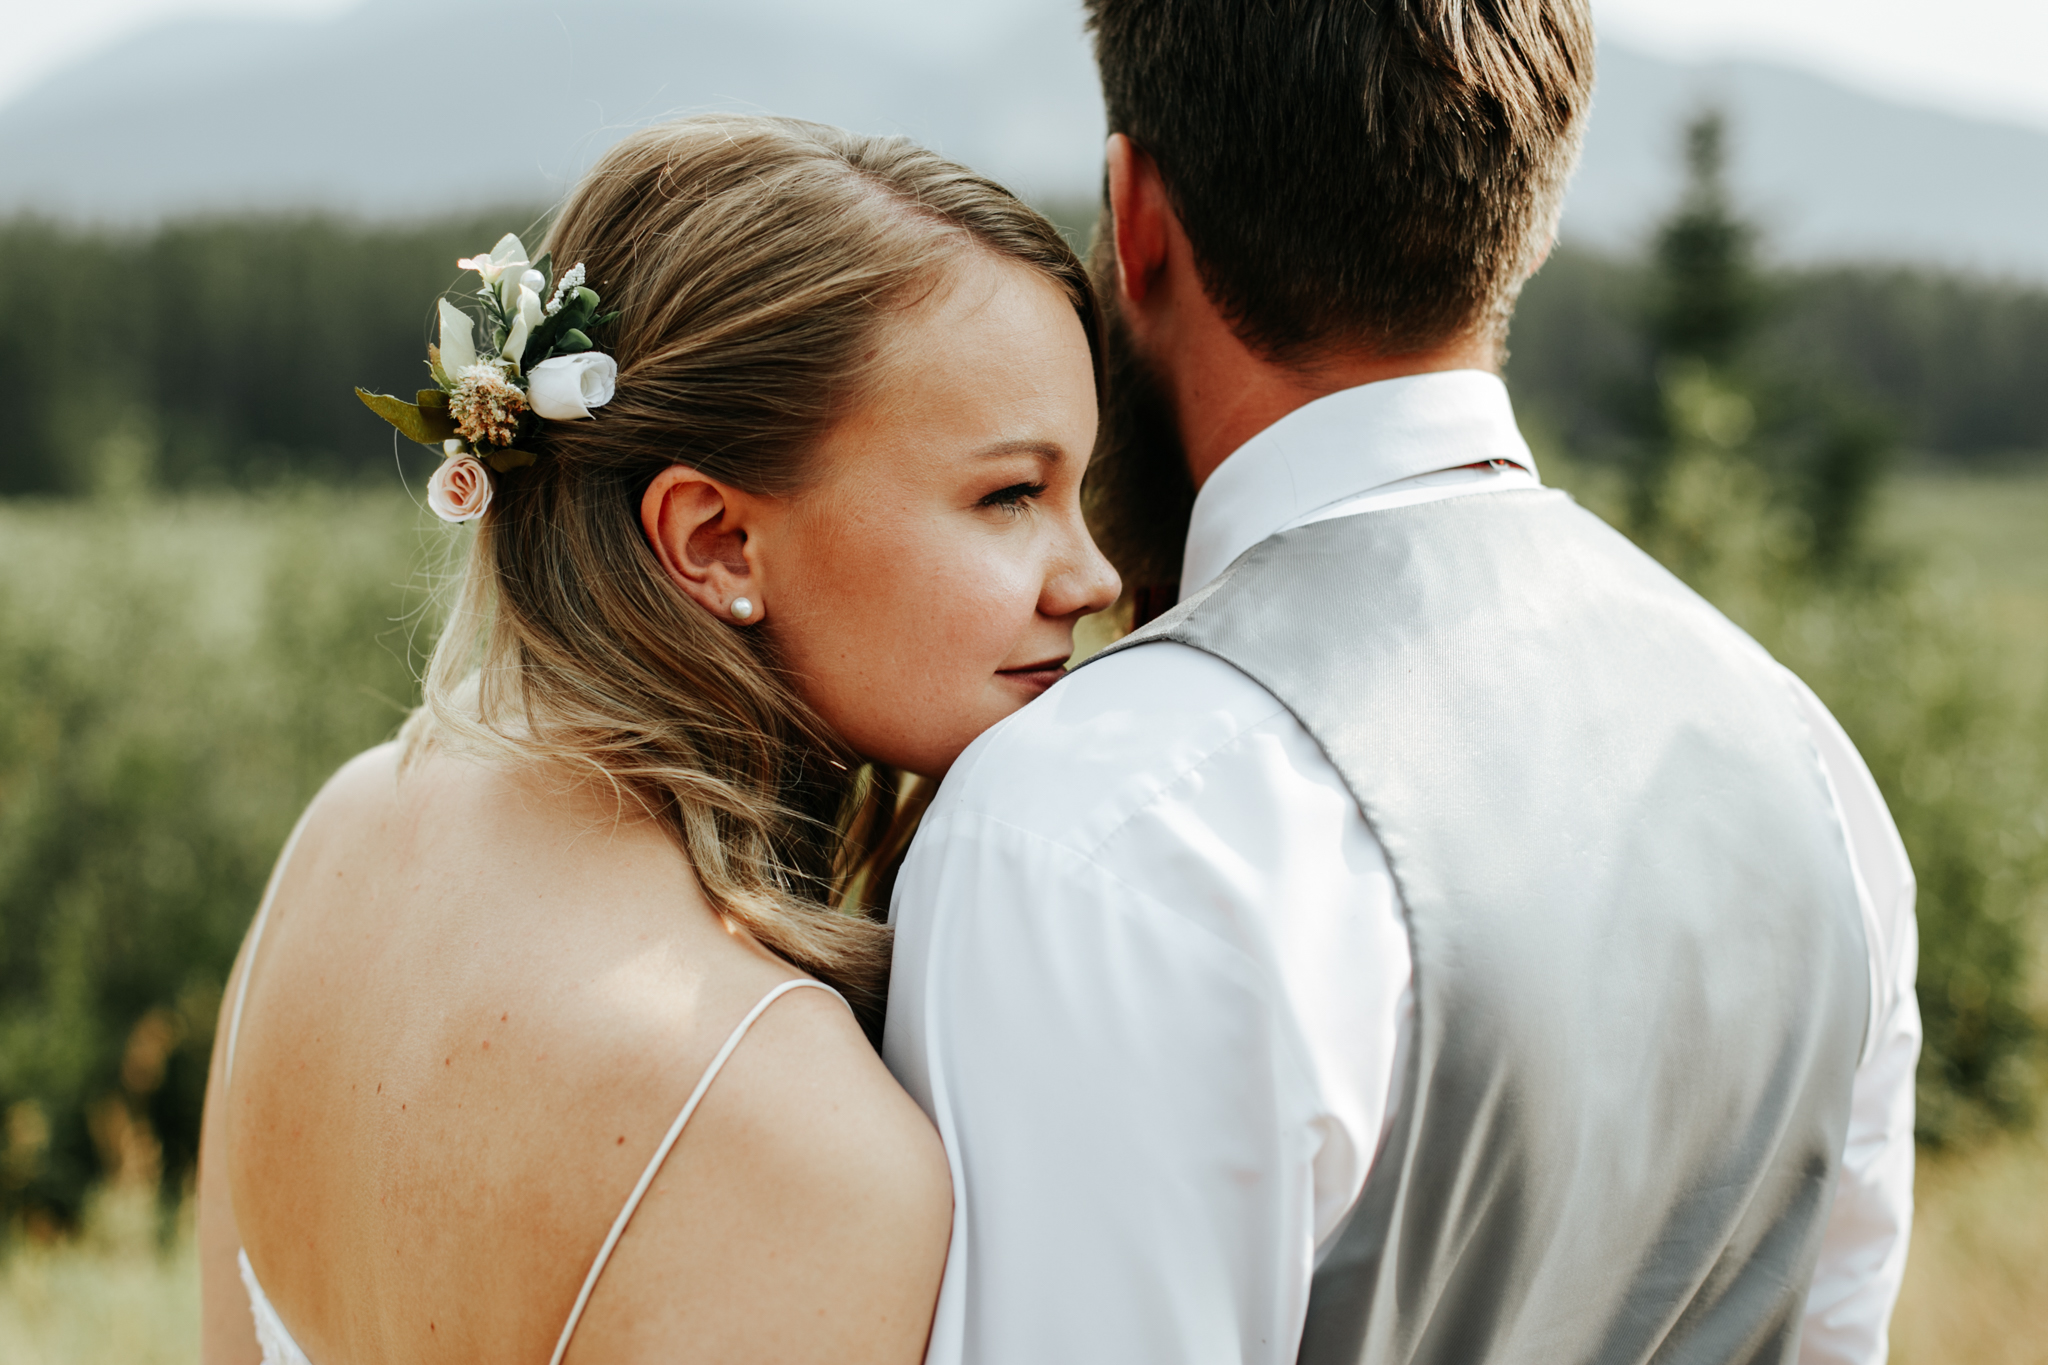 castle-mountain-wedding-photographer-love-and-be-loved-photography-lethbridge-pincher-creek-crowsnest-pass-yannick-rylee-photo-image-picture-155167.jpg